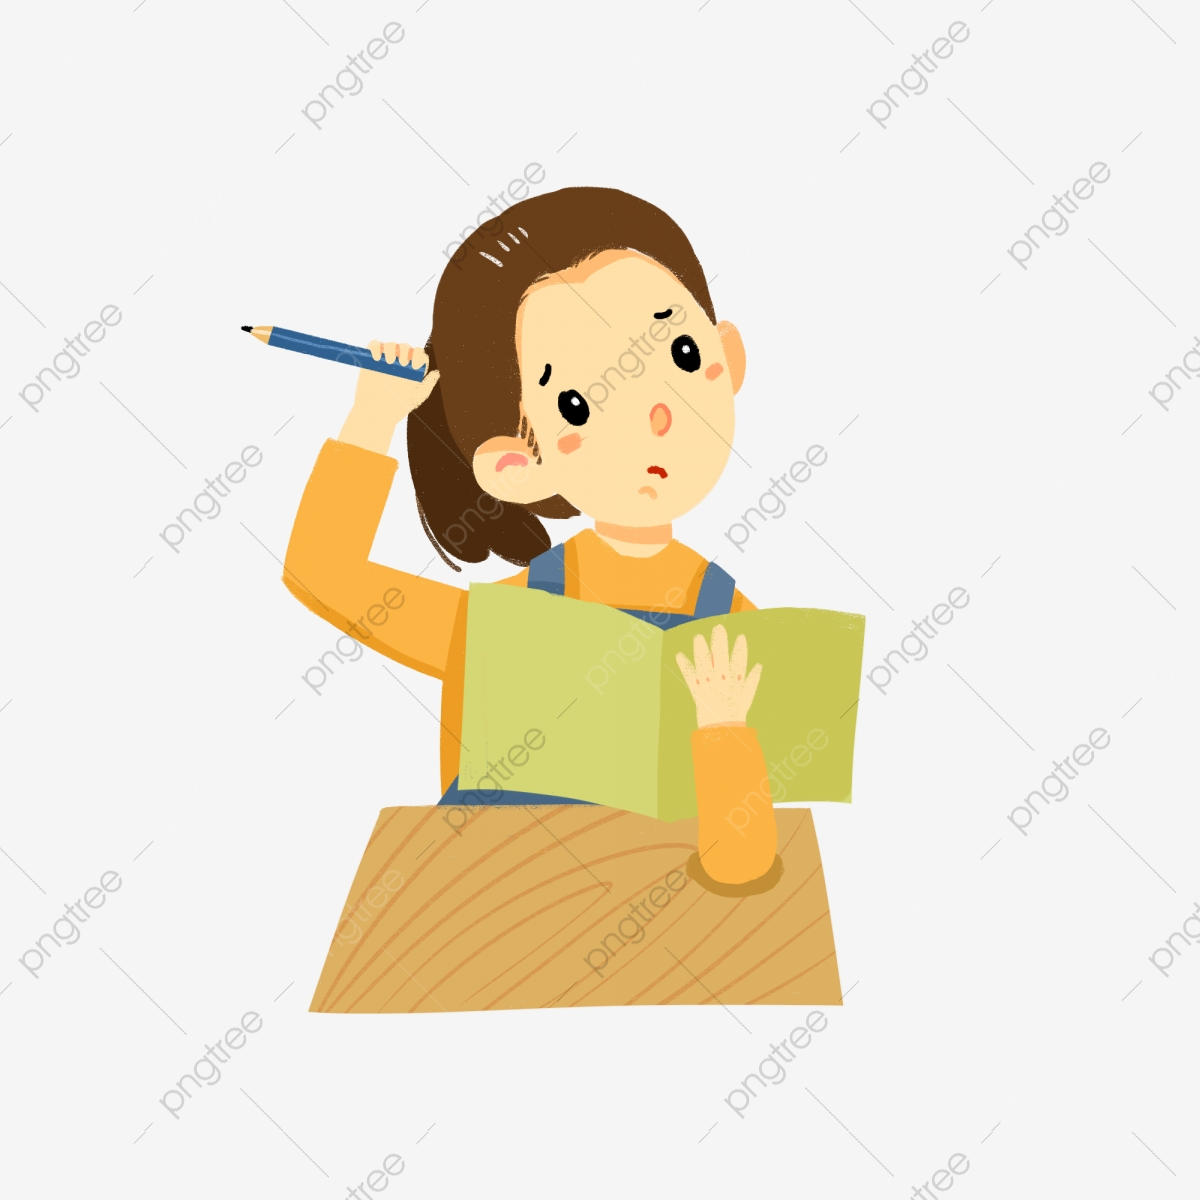 Free Doing Homework Clipart, Download Free Clip Art, Free Clip Art on  Clipart Library